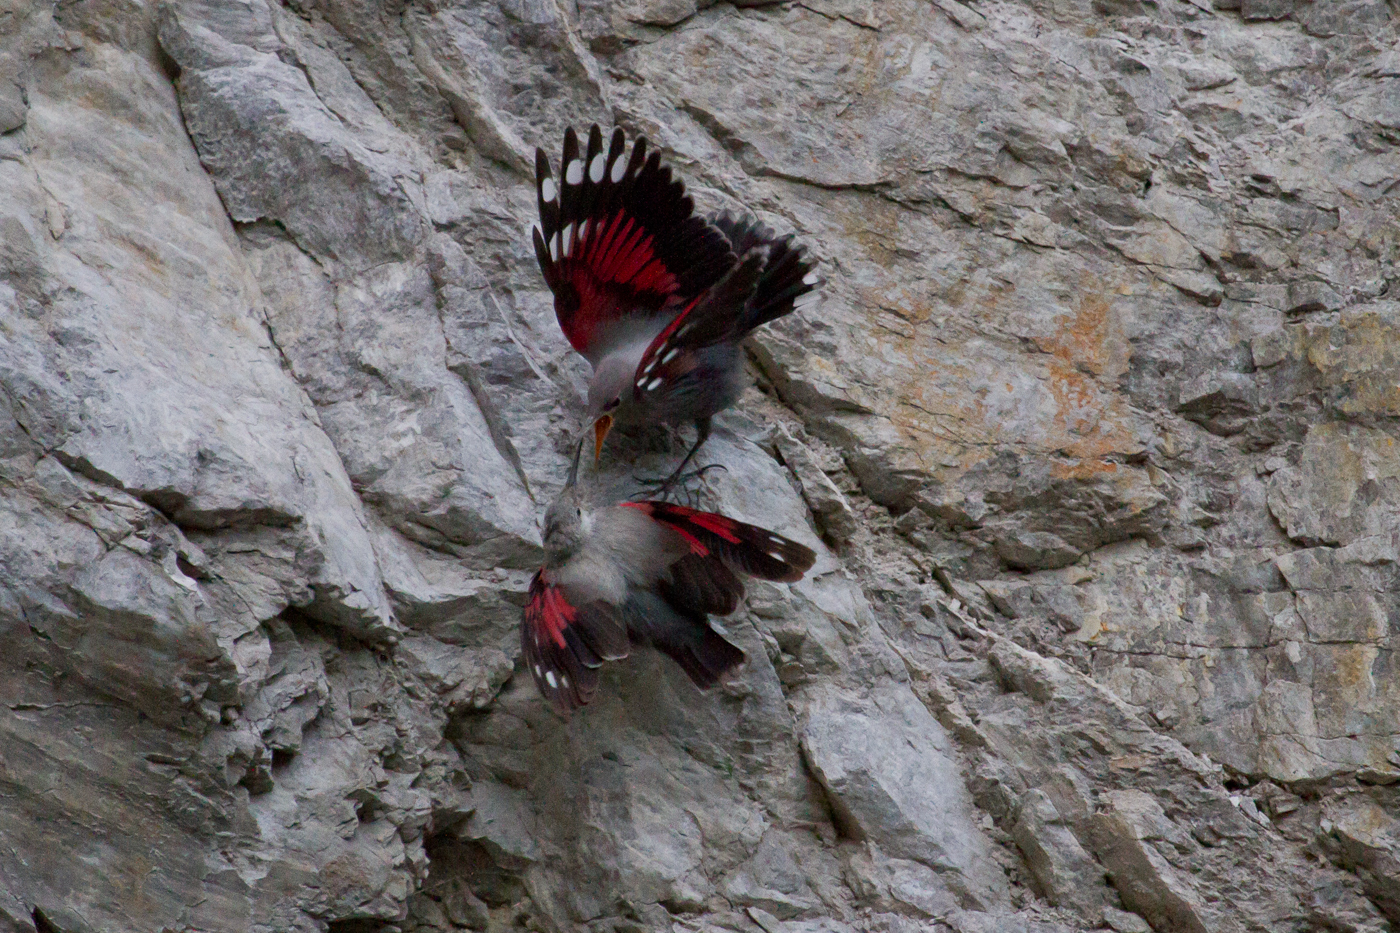 A juvenile Wallcreeper begs for food from its parents.